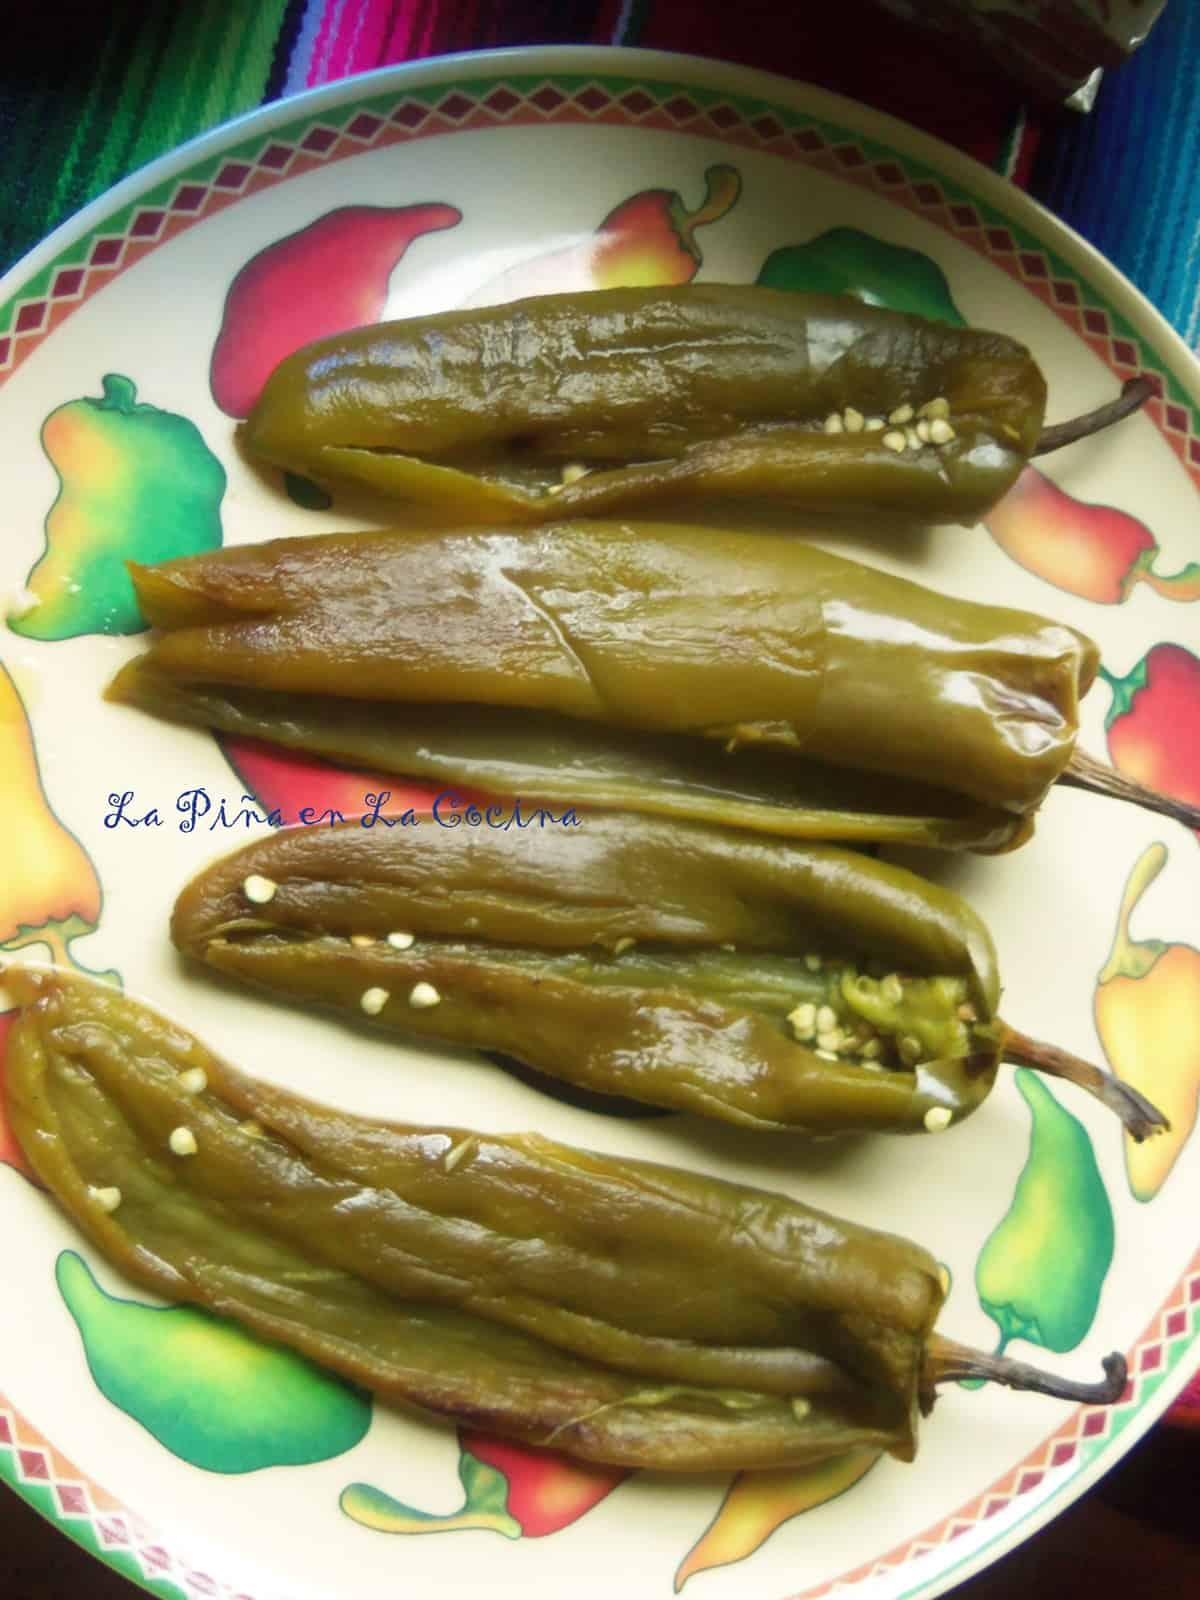 Roasted and peeled green chiles, know as Anaheim, New Mexico, Hatch Peppers or Chile Chilacas